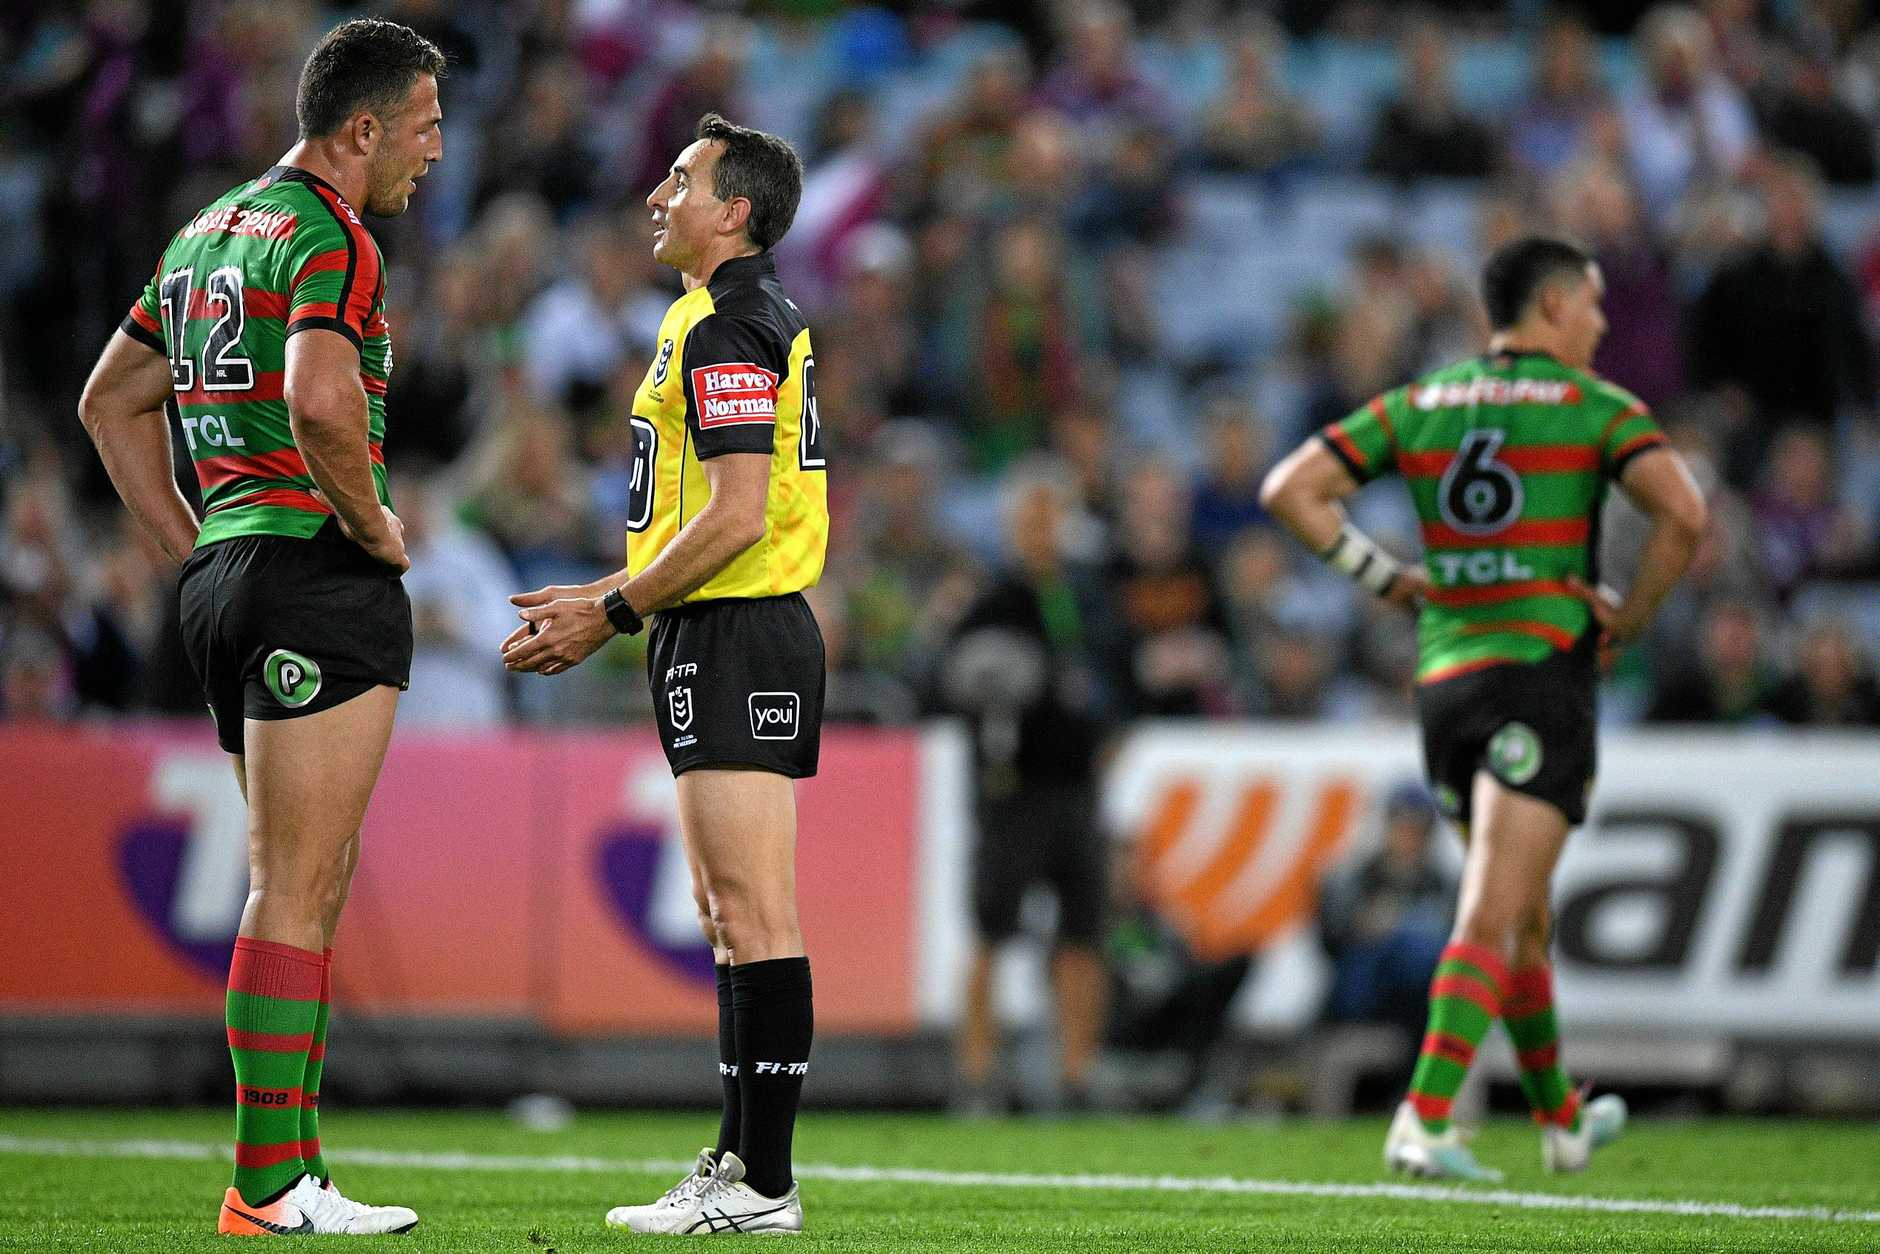 Sam Burgess remonstrates with referee Gerard Sutton after Cody Walker was sent to the bin.